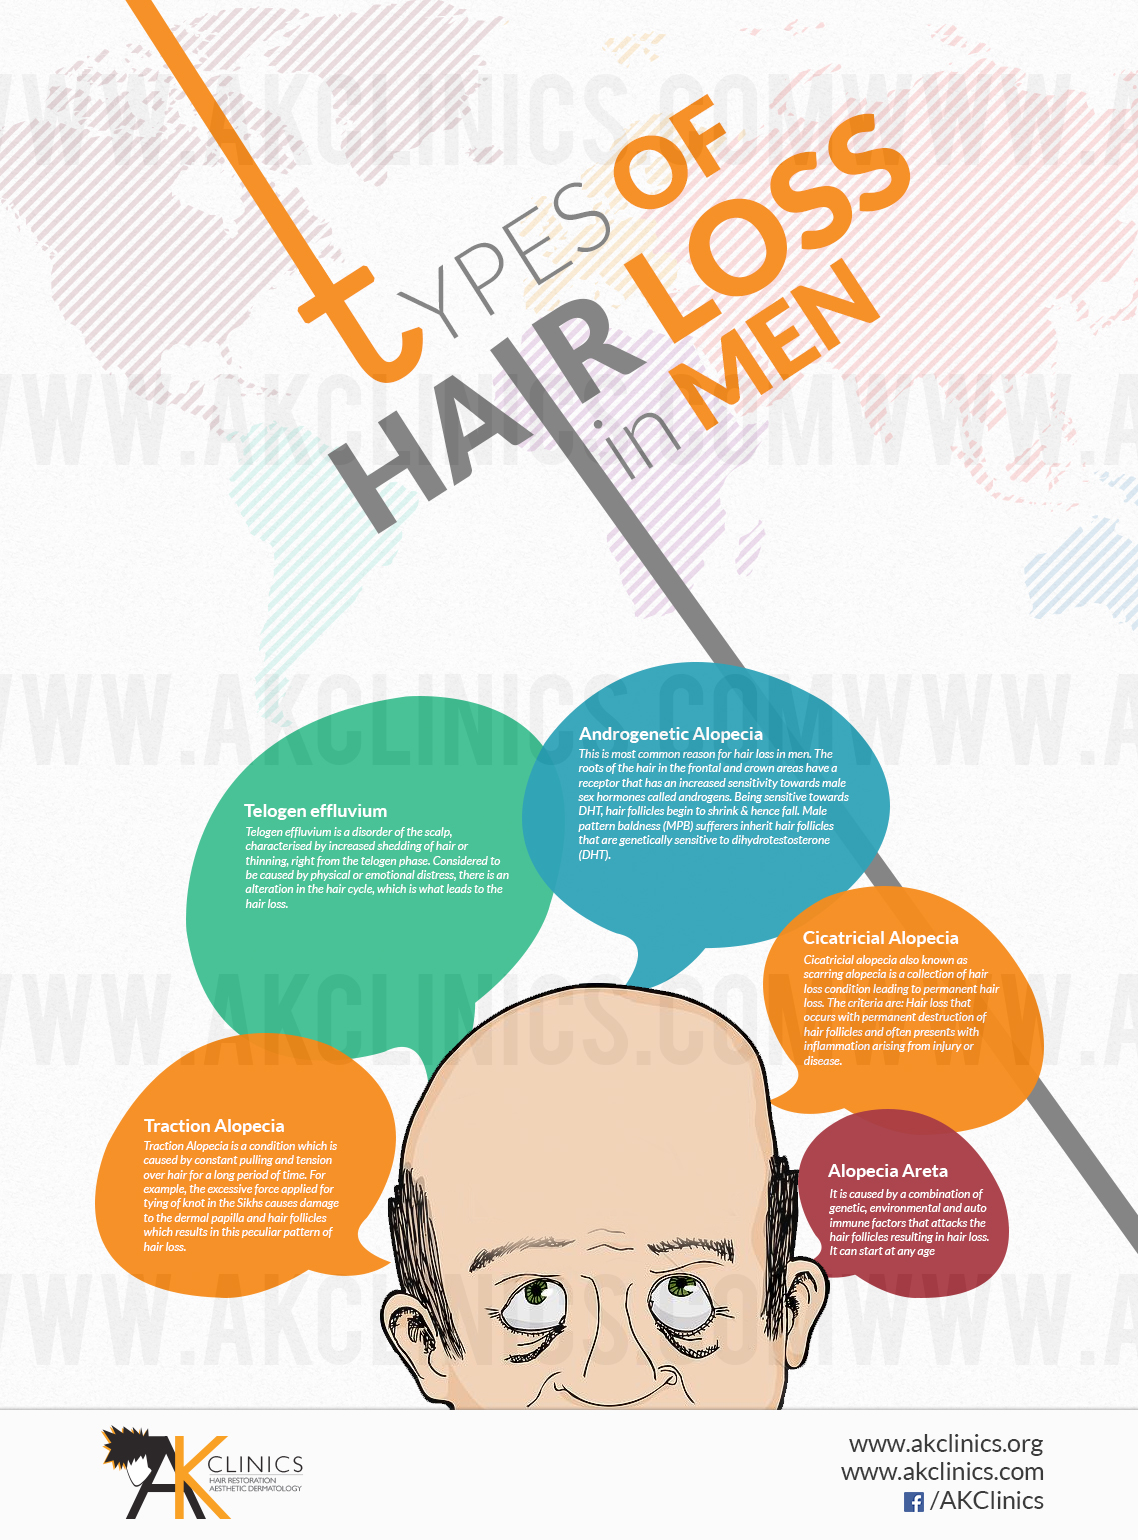 types-of-hair-loss-in-men-infographic_548ed2bab97a0